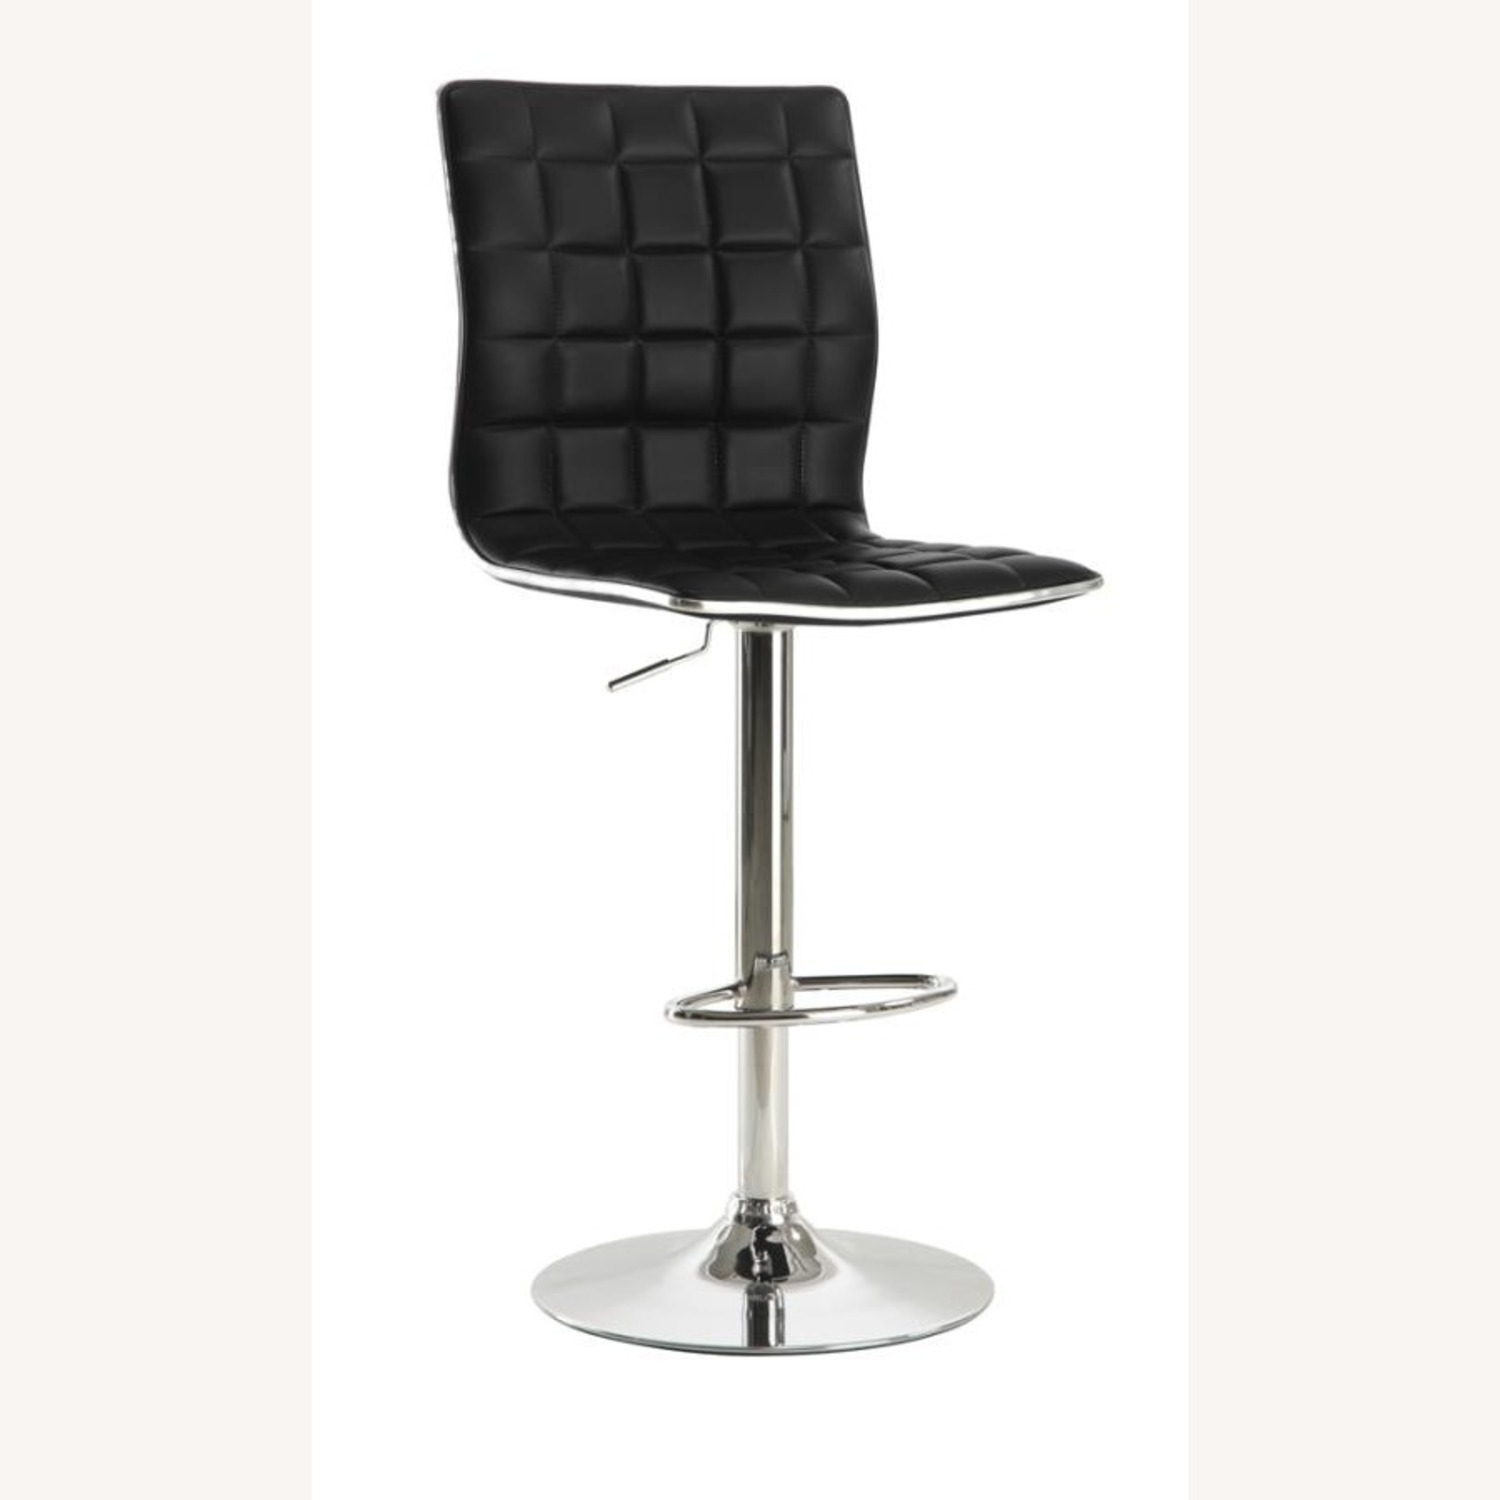 Bar Stool In Black Faux Leather W/ Adjustable Base - image-0